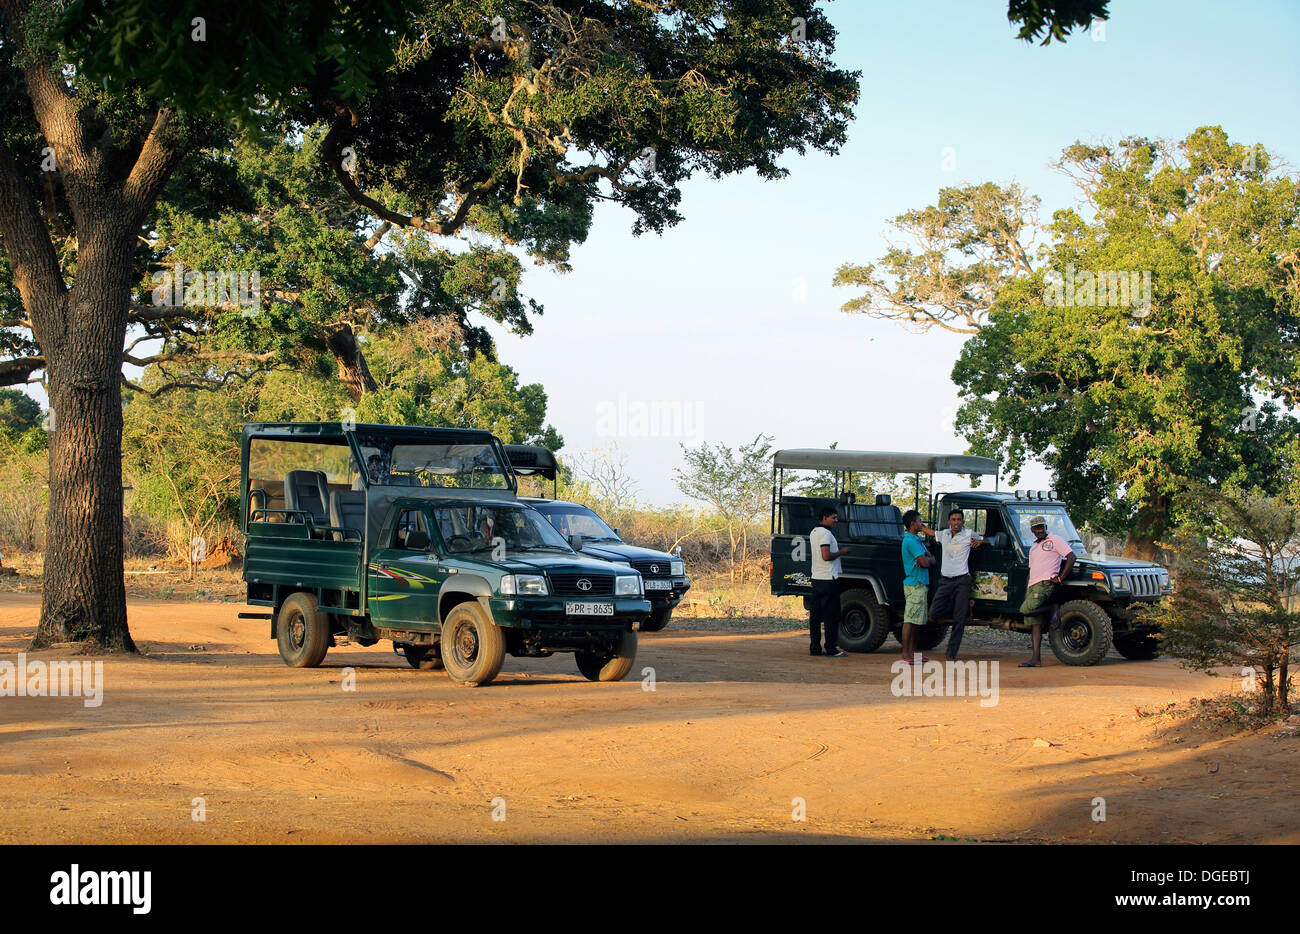 Wildlife safari jeep driver guides waiting for their clients in Yala National Park, Sri Lanka - Stock Image